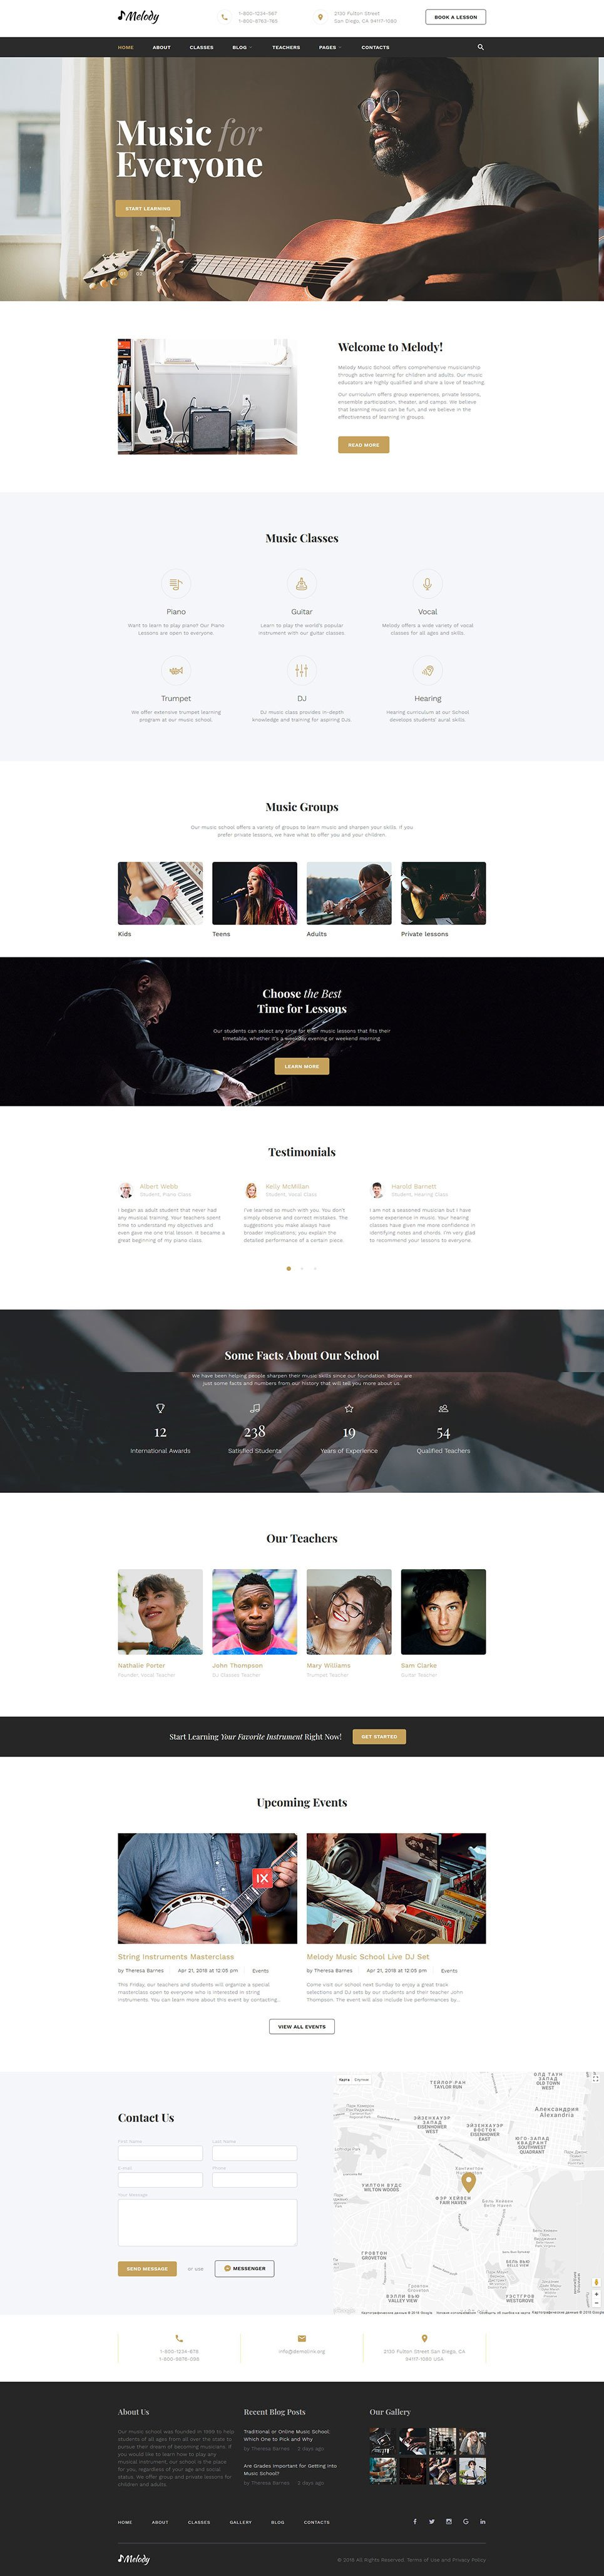 Music Education Website Template New Screenshots BIG